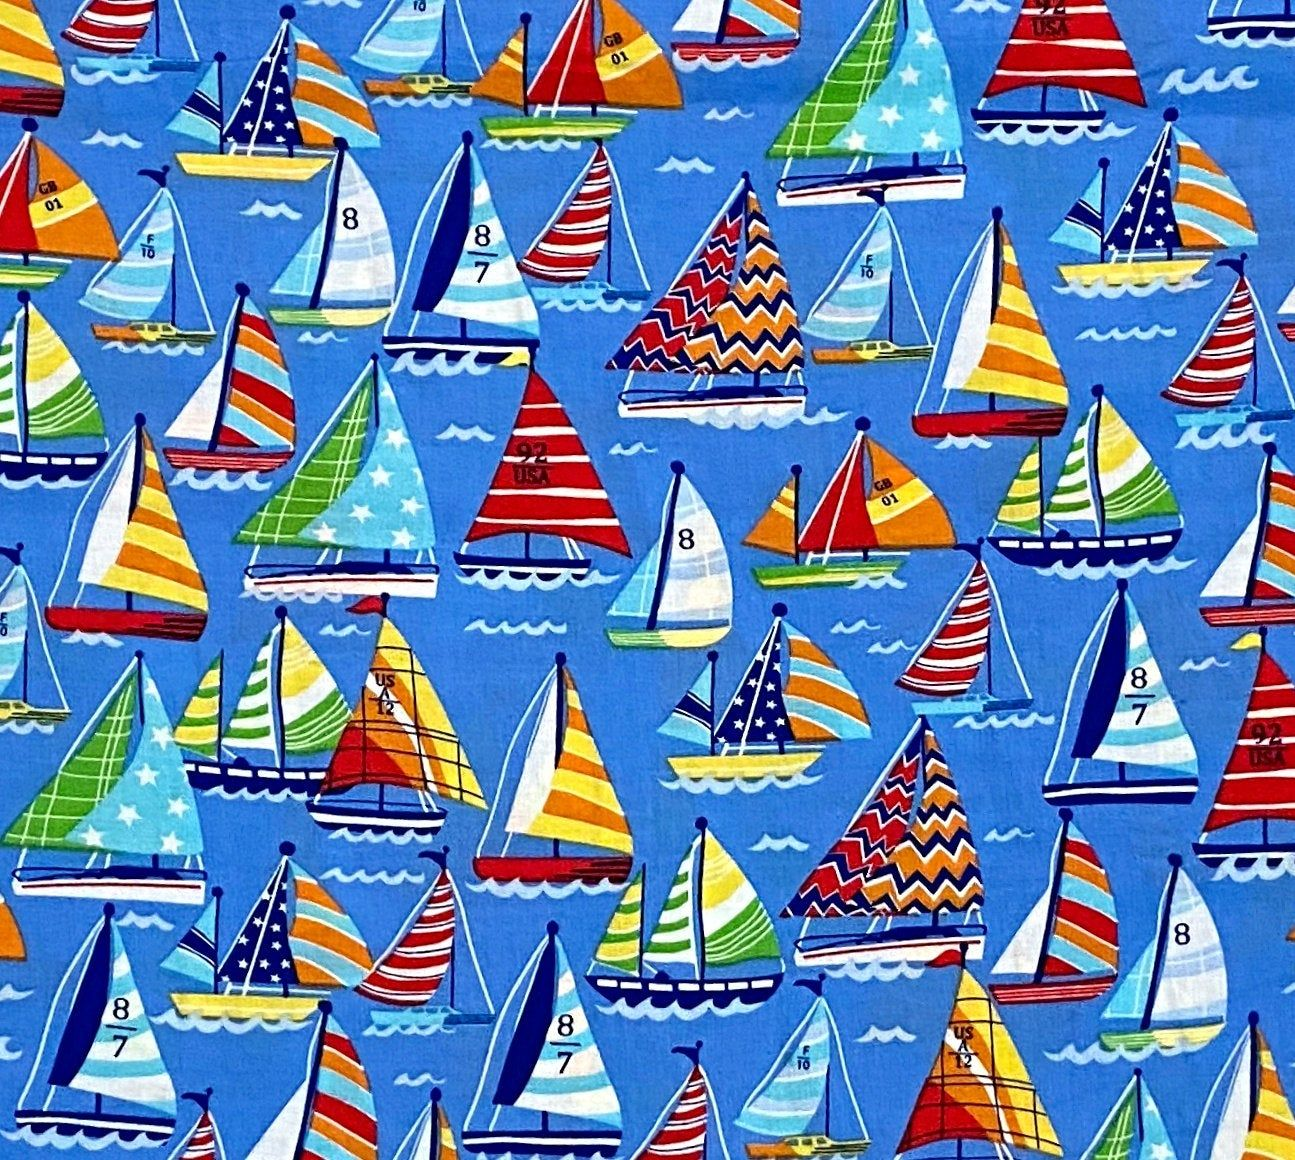 Sailboats Fabric Novelty Cotton Fabric Boats Fabric  100% Cotton Fabric Face Mask Fabric FQ